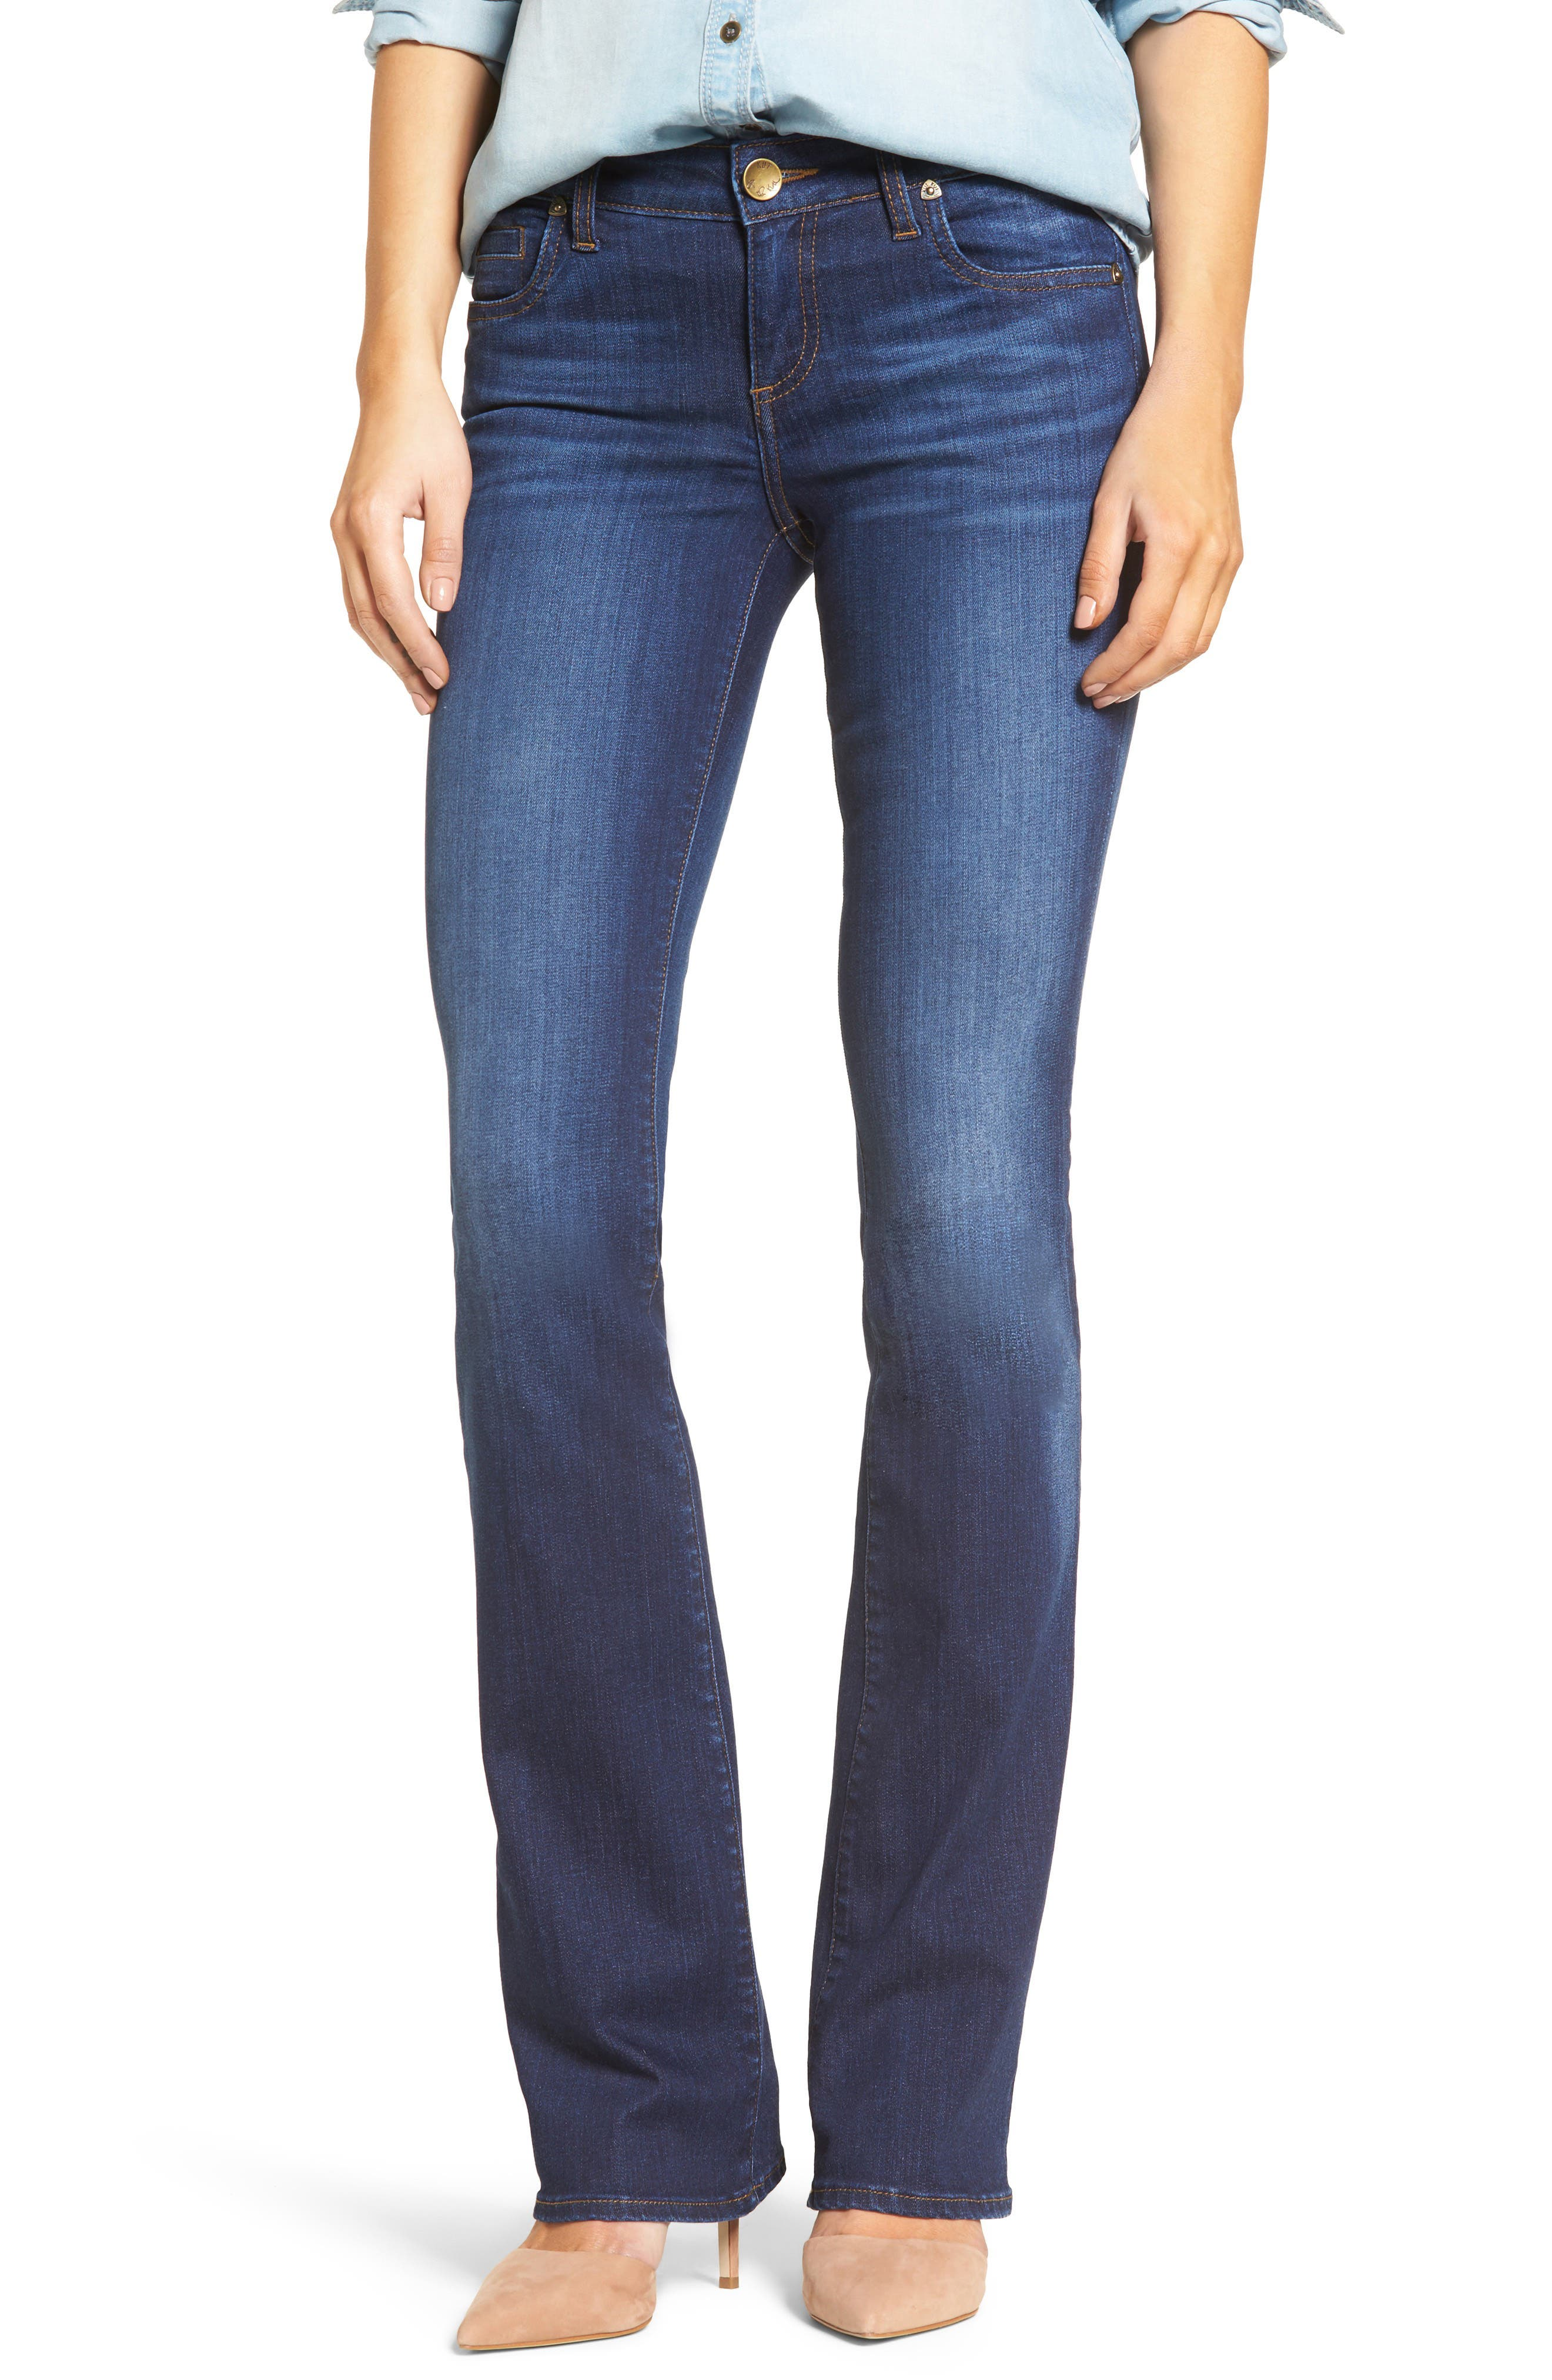 KUT from the Kloth Natalie Stretch Bootleg Jeans (Invigorated) (Regular & Petite)